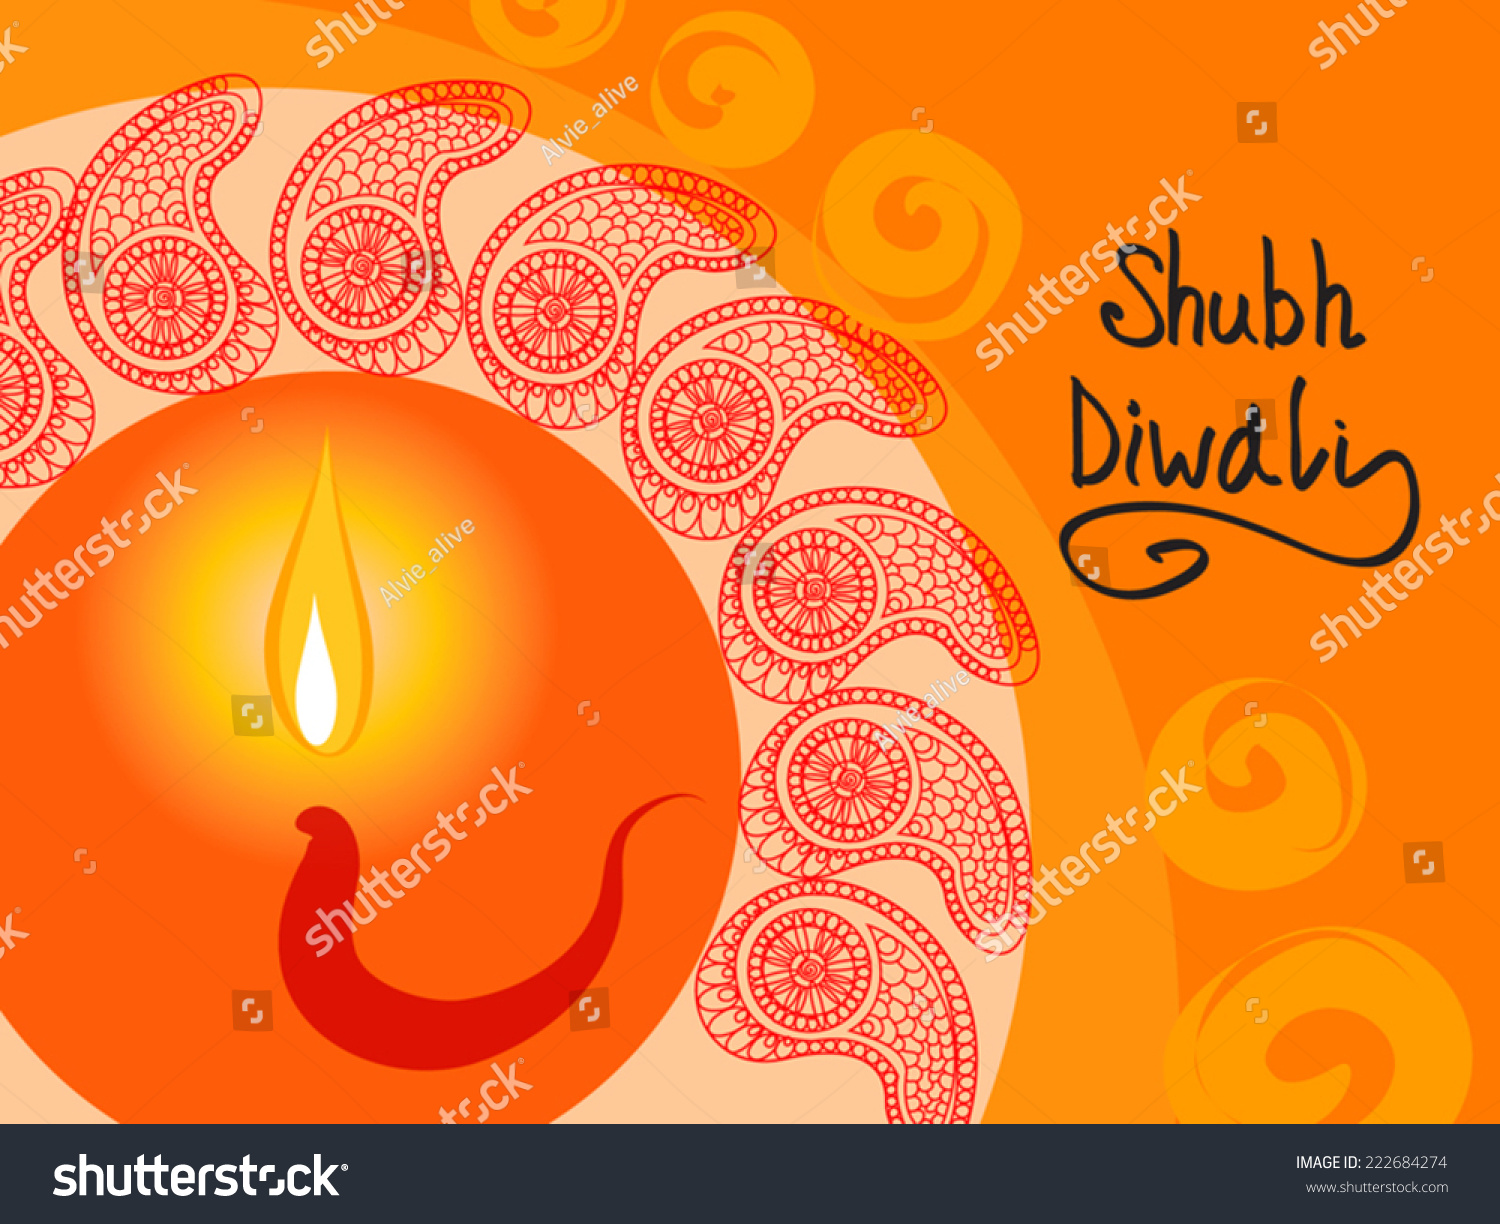 Beautiful Shubh Diwali Happy Diwali Greeting Stock Vector Royalty